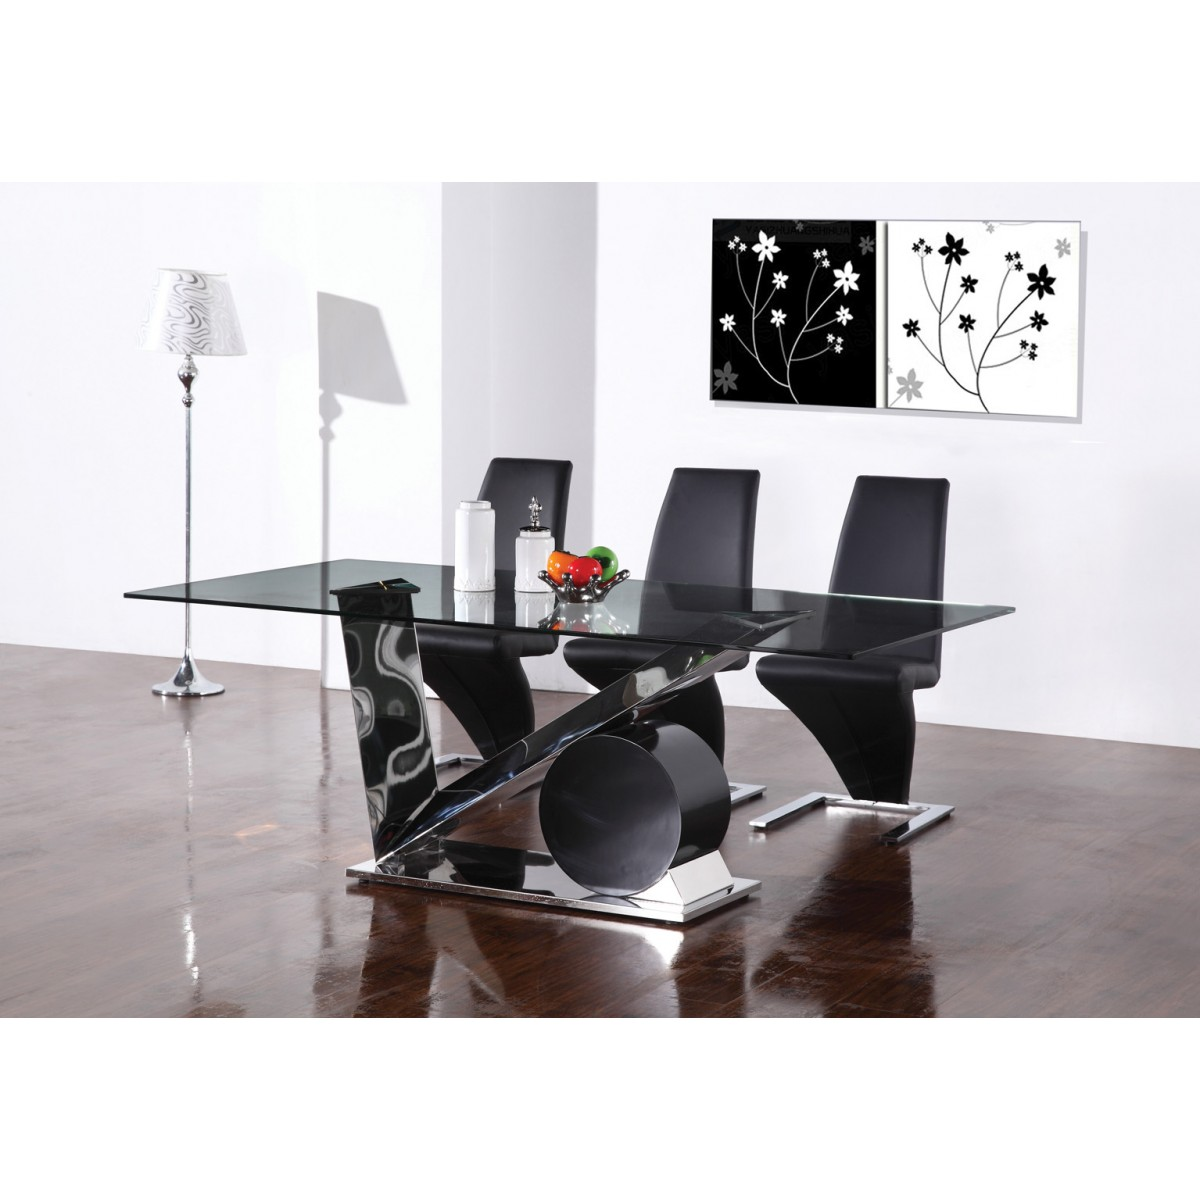 Formidable set de table pour table en verre 4 table for Table salle manger verre